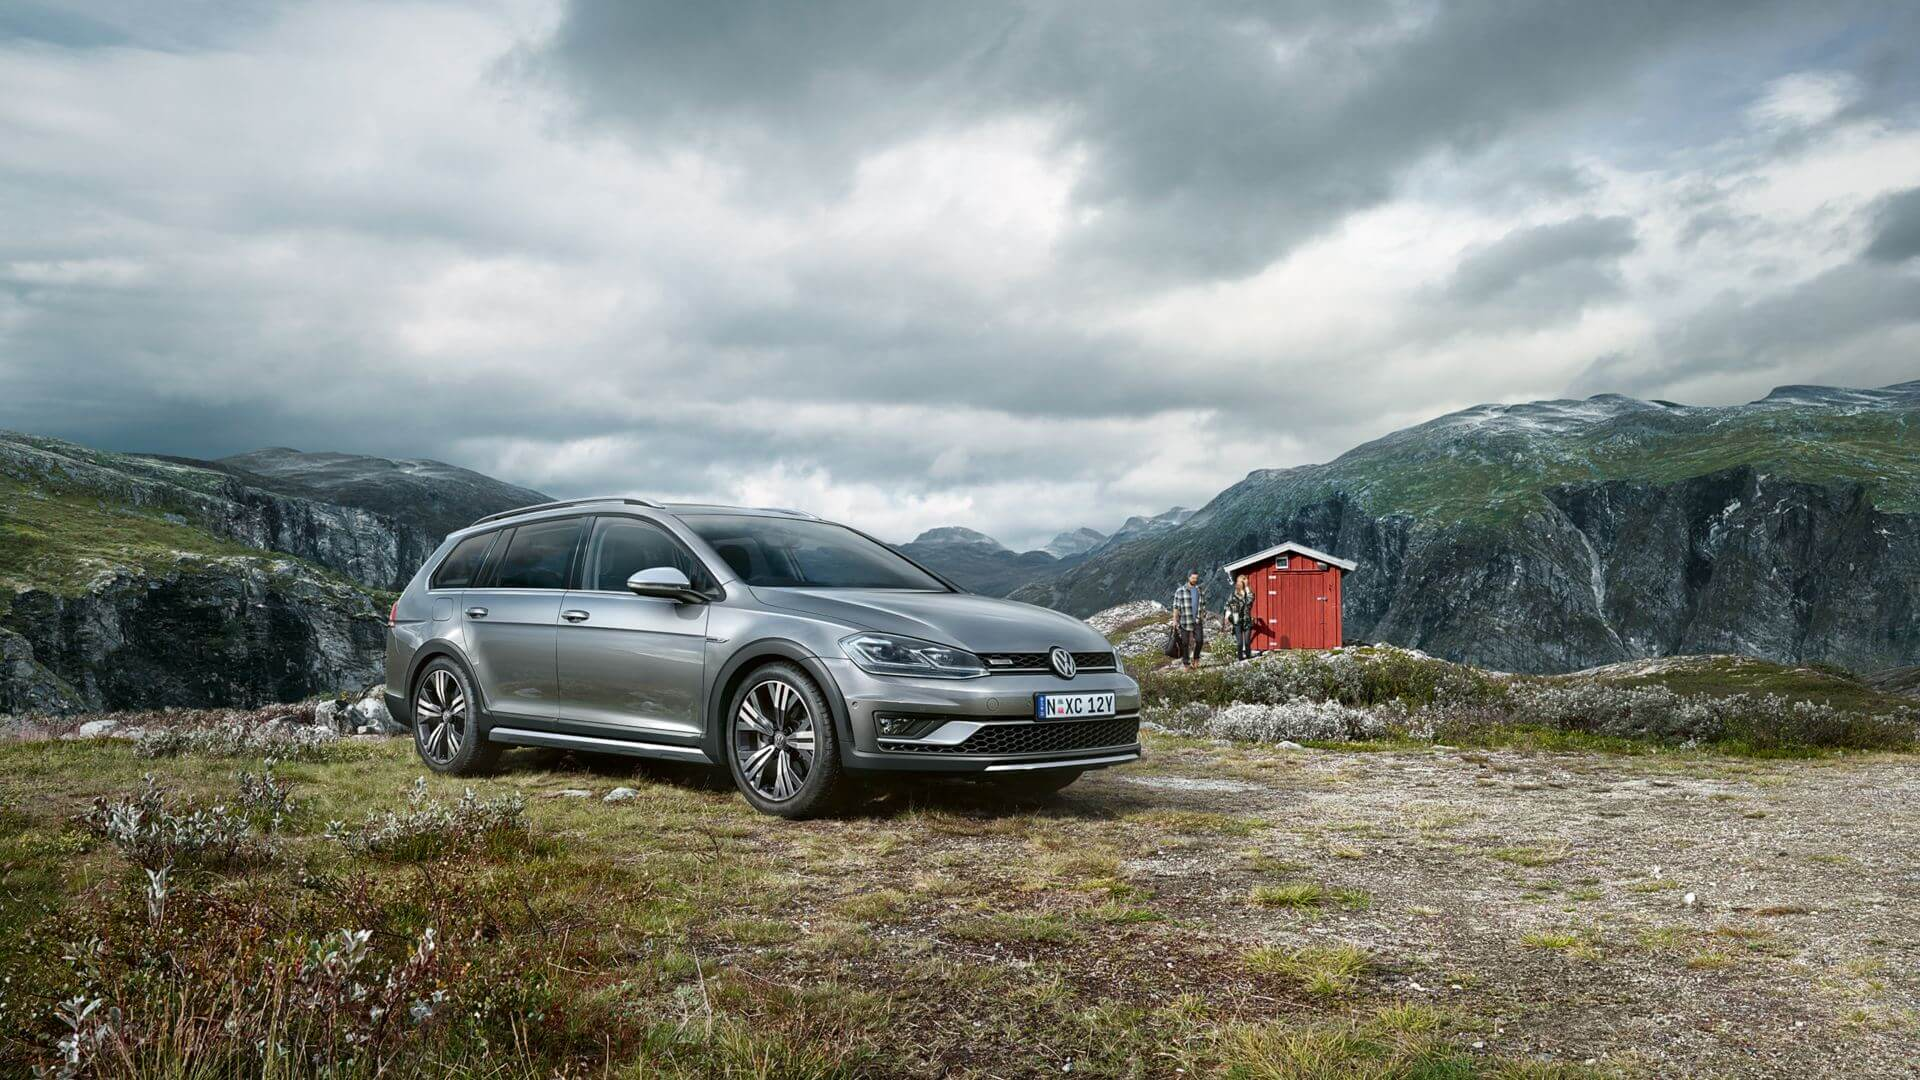 Golf Alltrack <strong>Golf Alltrack</strong><br>All tracks lead to adventure.